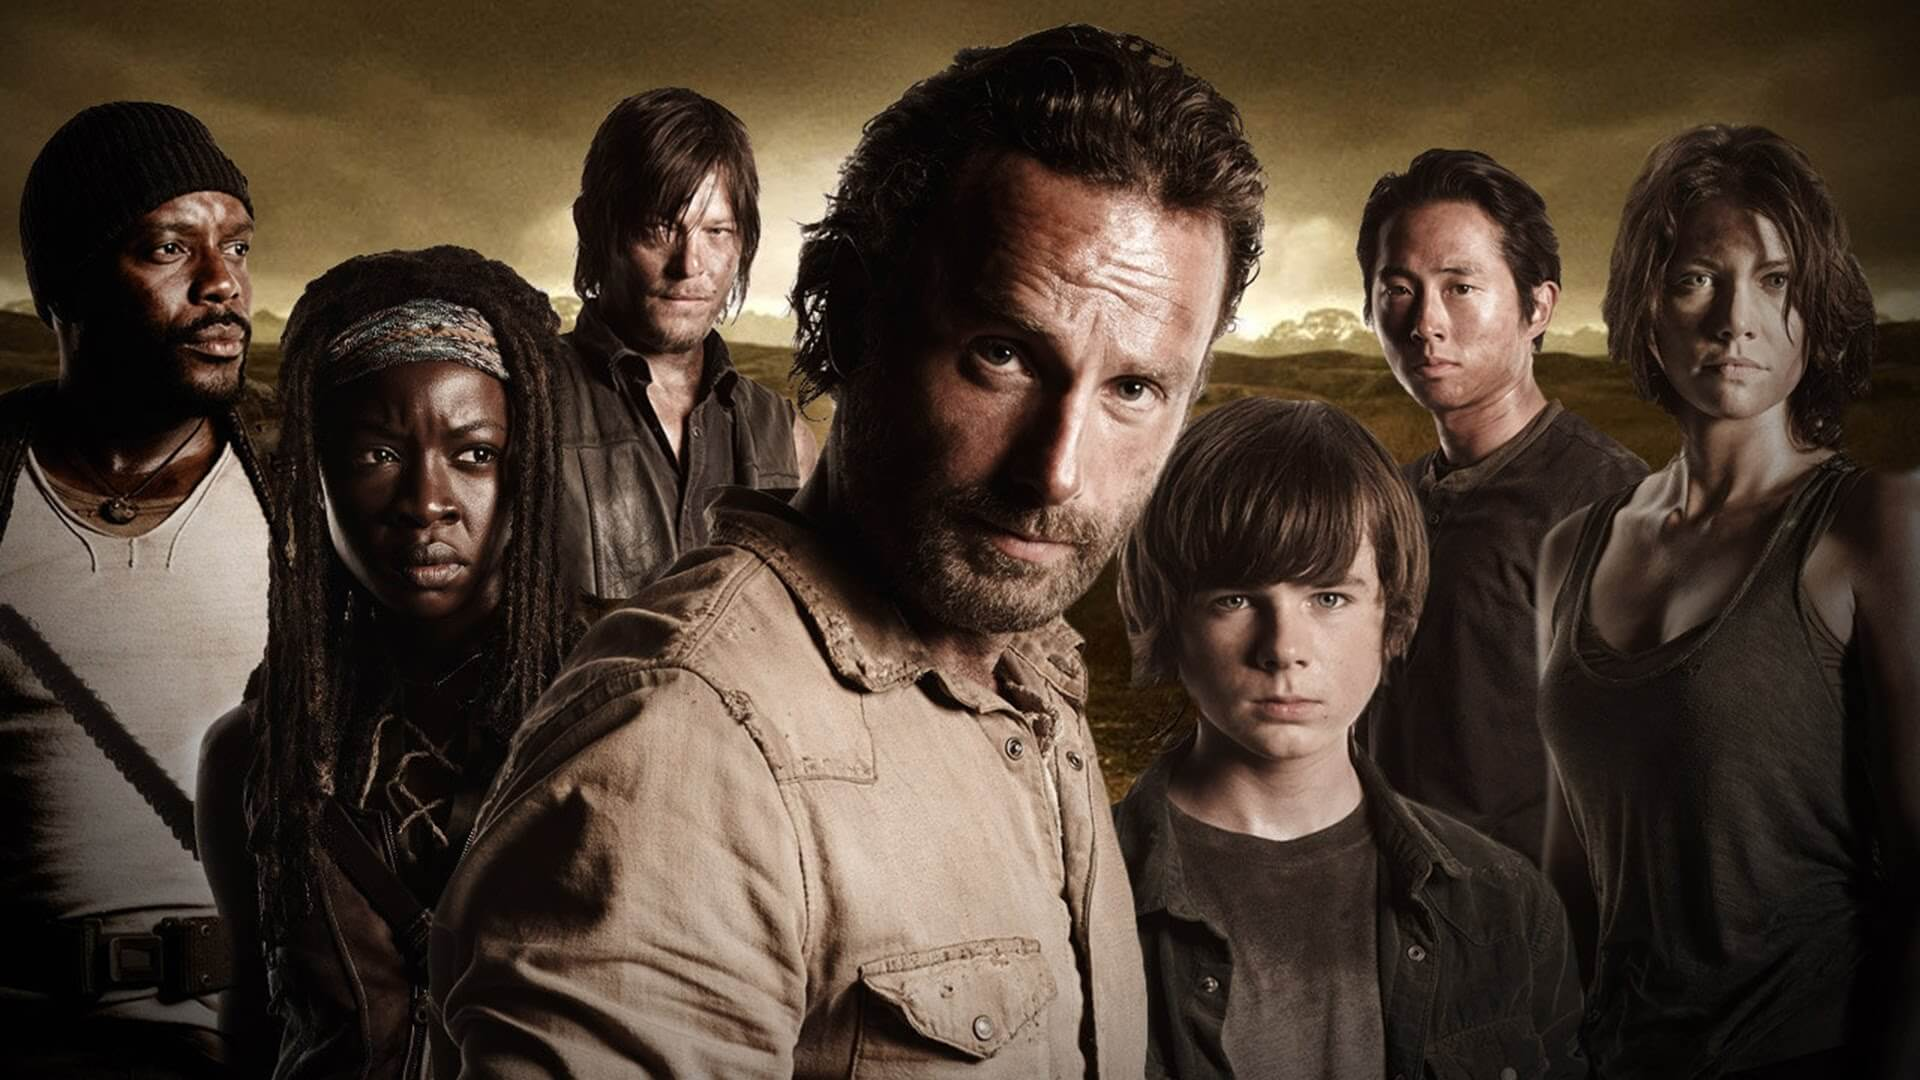 One of the fastest binged shows on Netflix is The Walking Dead.